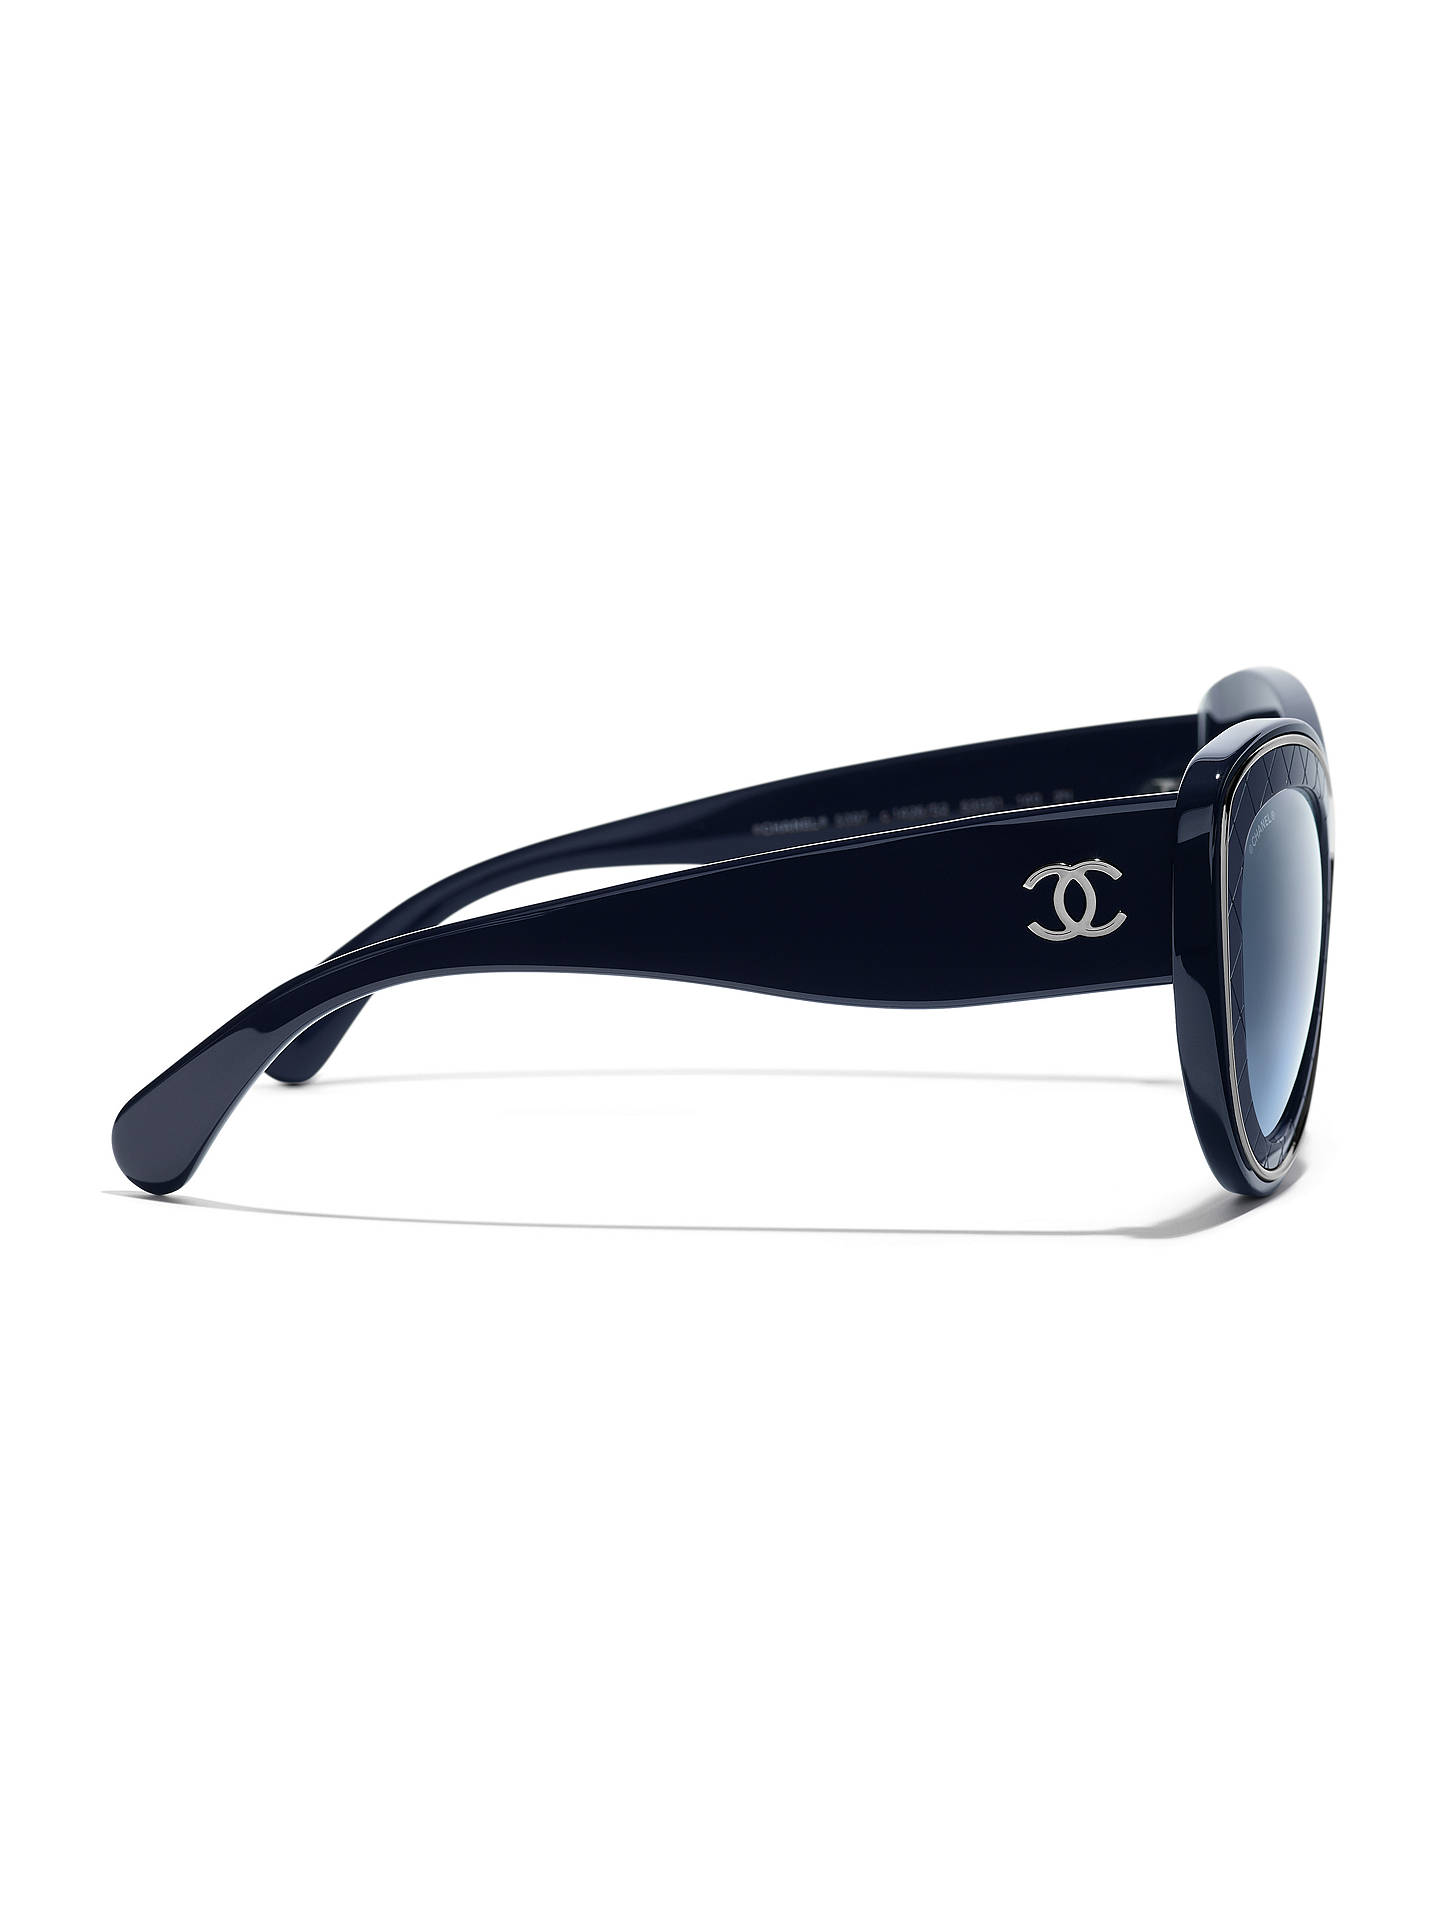 BuyCHANEL Butterfly Sunglasses CH5397 Navy/Blue Gradient Online at johnlewis.com